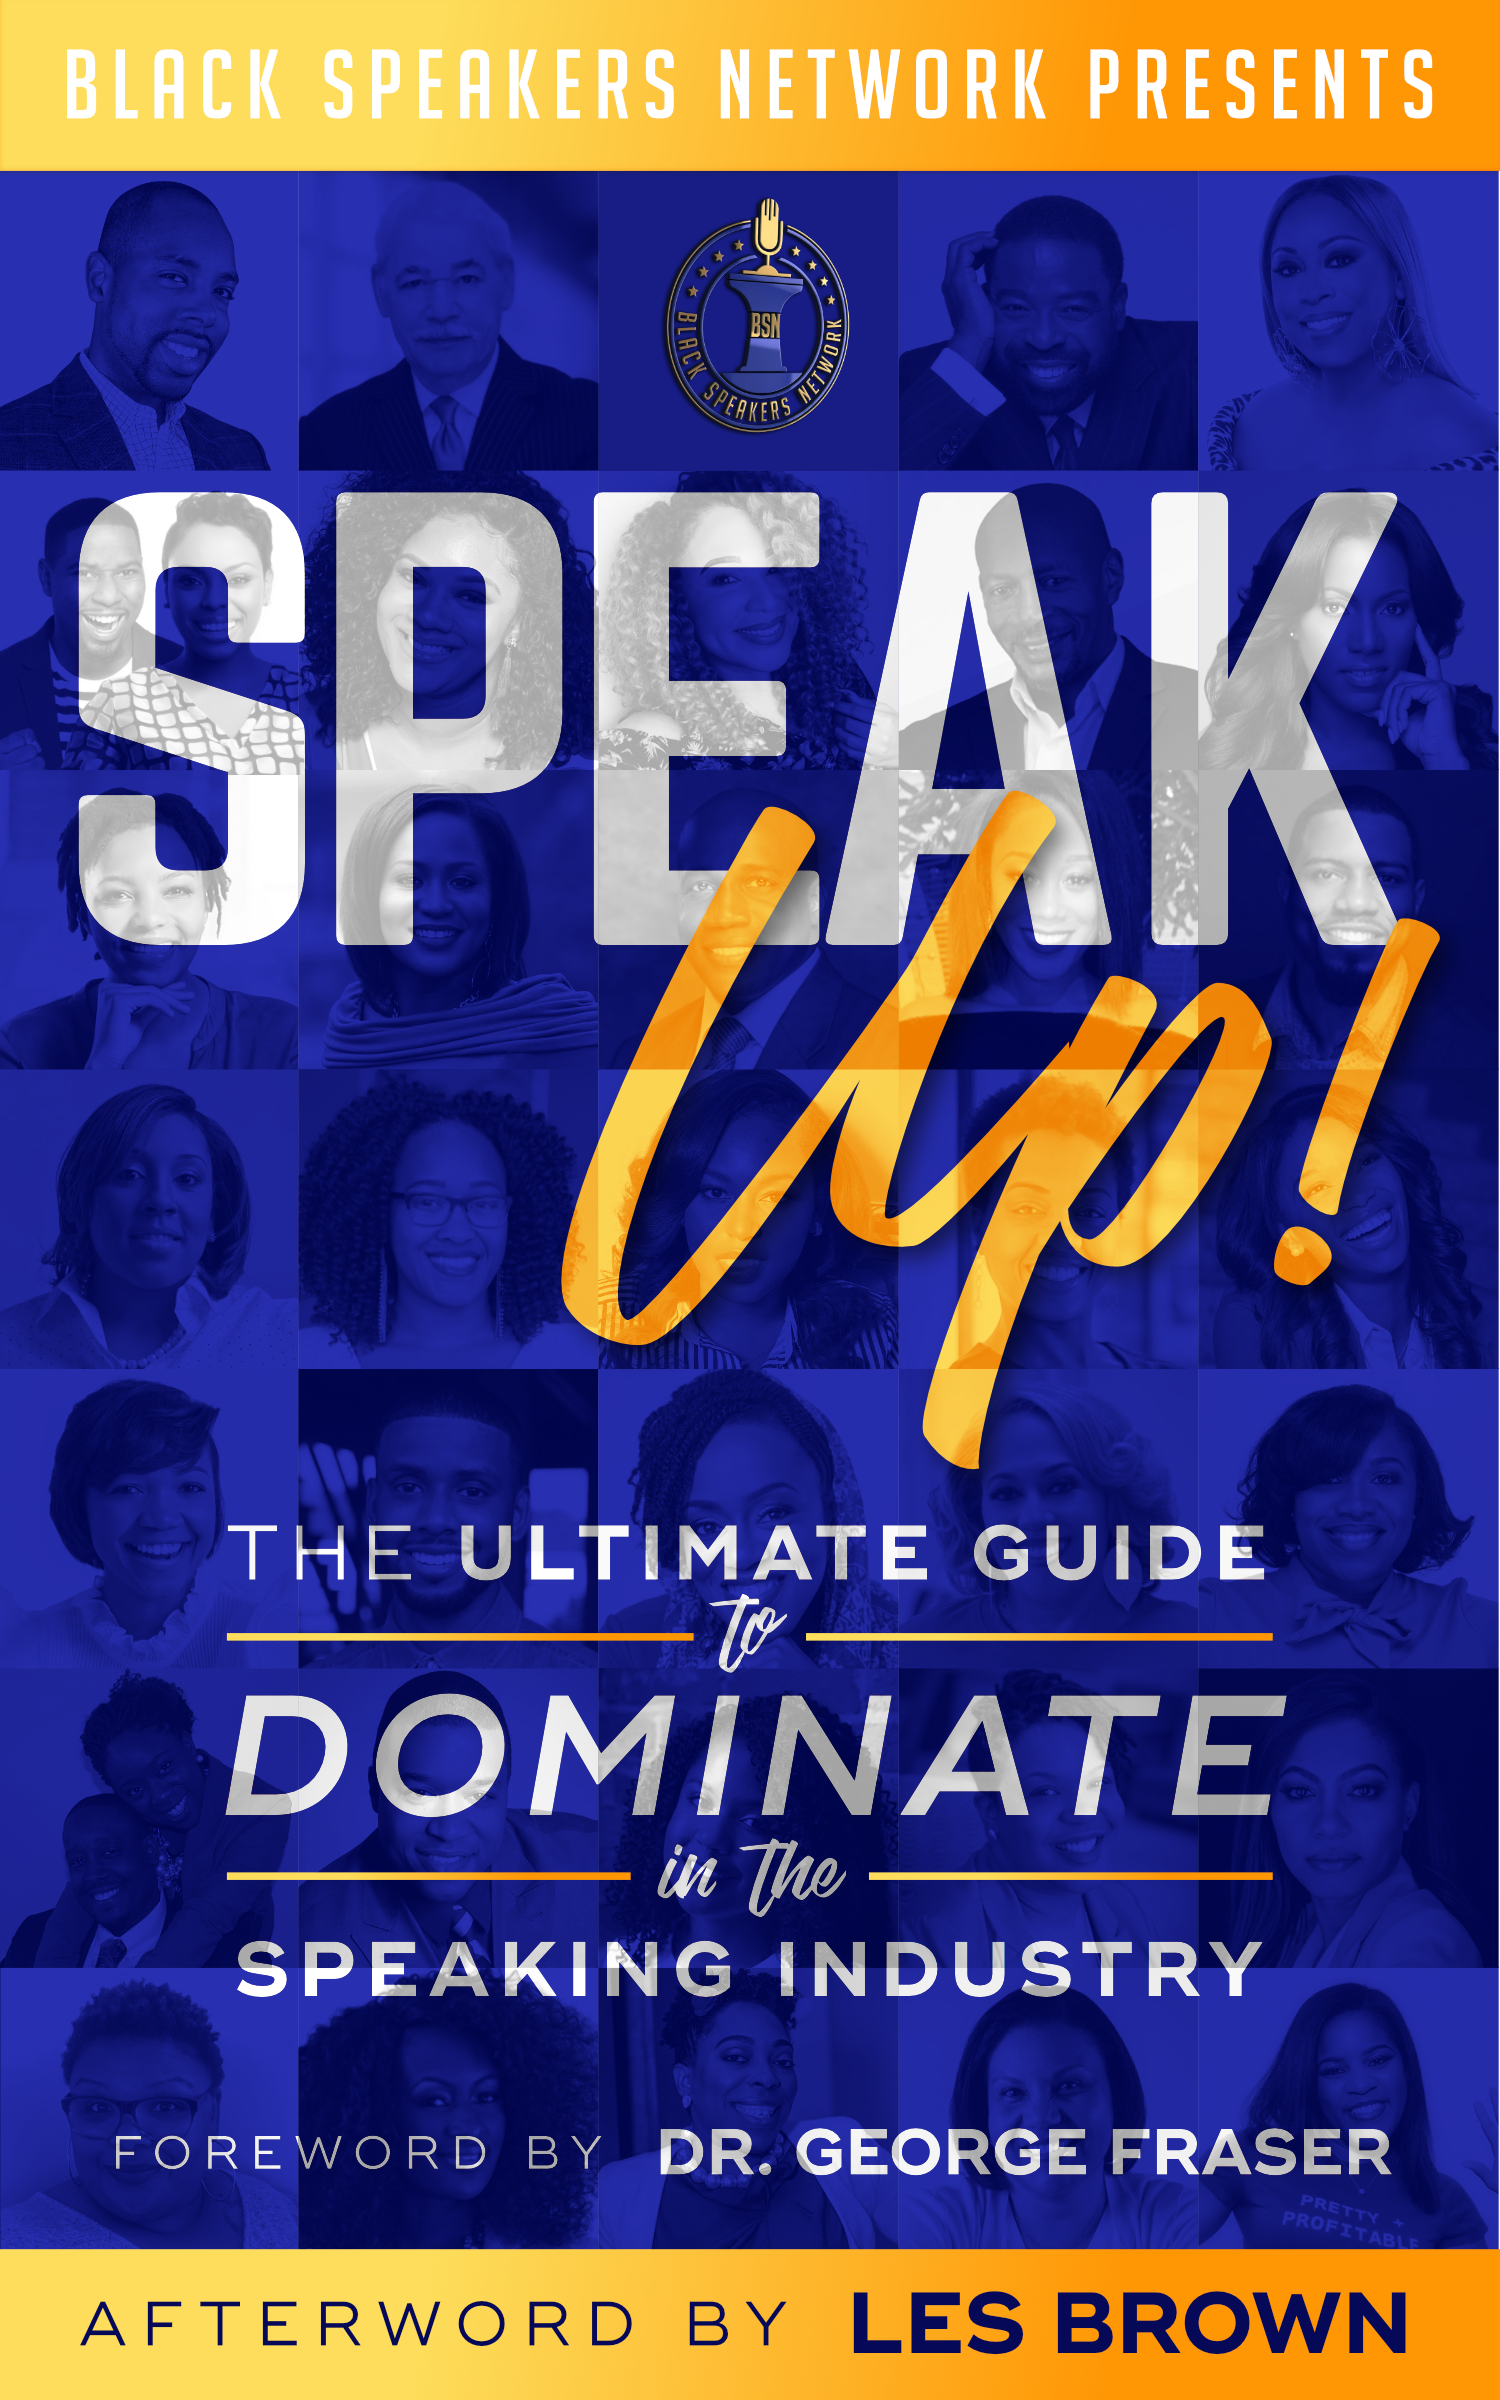 Speak Up! The Ultimate Guide to Dominate in The Speaking Industry - Speak Up! The Ultimate Guide to Dominate in the Speaking Industry is #1 Amazon Best-Selling Book and is the FIRST book you need to read as a professional speaker. The face of the professional speaking is changing. If you have been searching for the formula to get booked and paid as a professional speaker this book is for you.When you pick up this book, you will gain access to the expertise and wisdom of over 30 remarkable co-authors who know the speaking business inside and out. They represent emerging thought leaders, entrepreneurs and expert speakers dedicated to our mission to equip, connect and inspire the next generation of Black Professional Speakers.LEARN MORE or ORDER TODAY